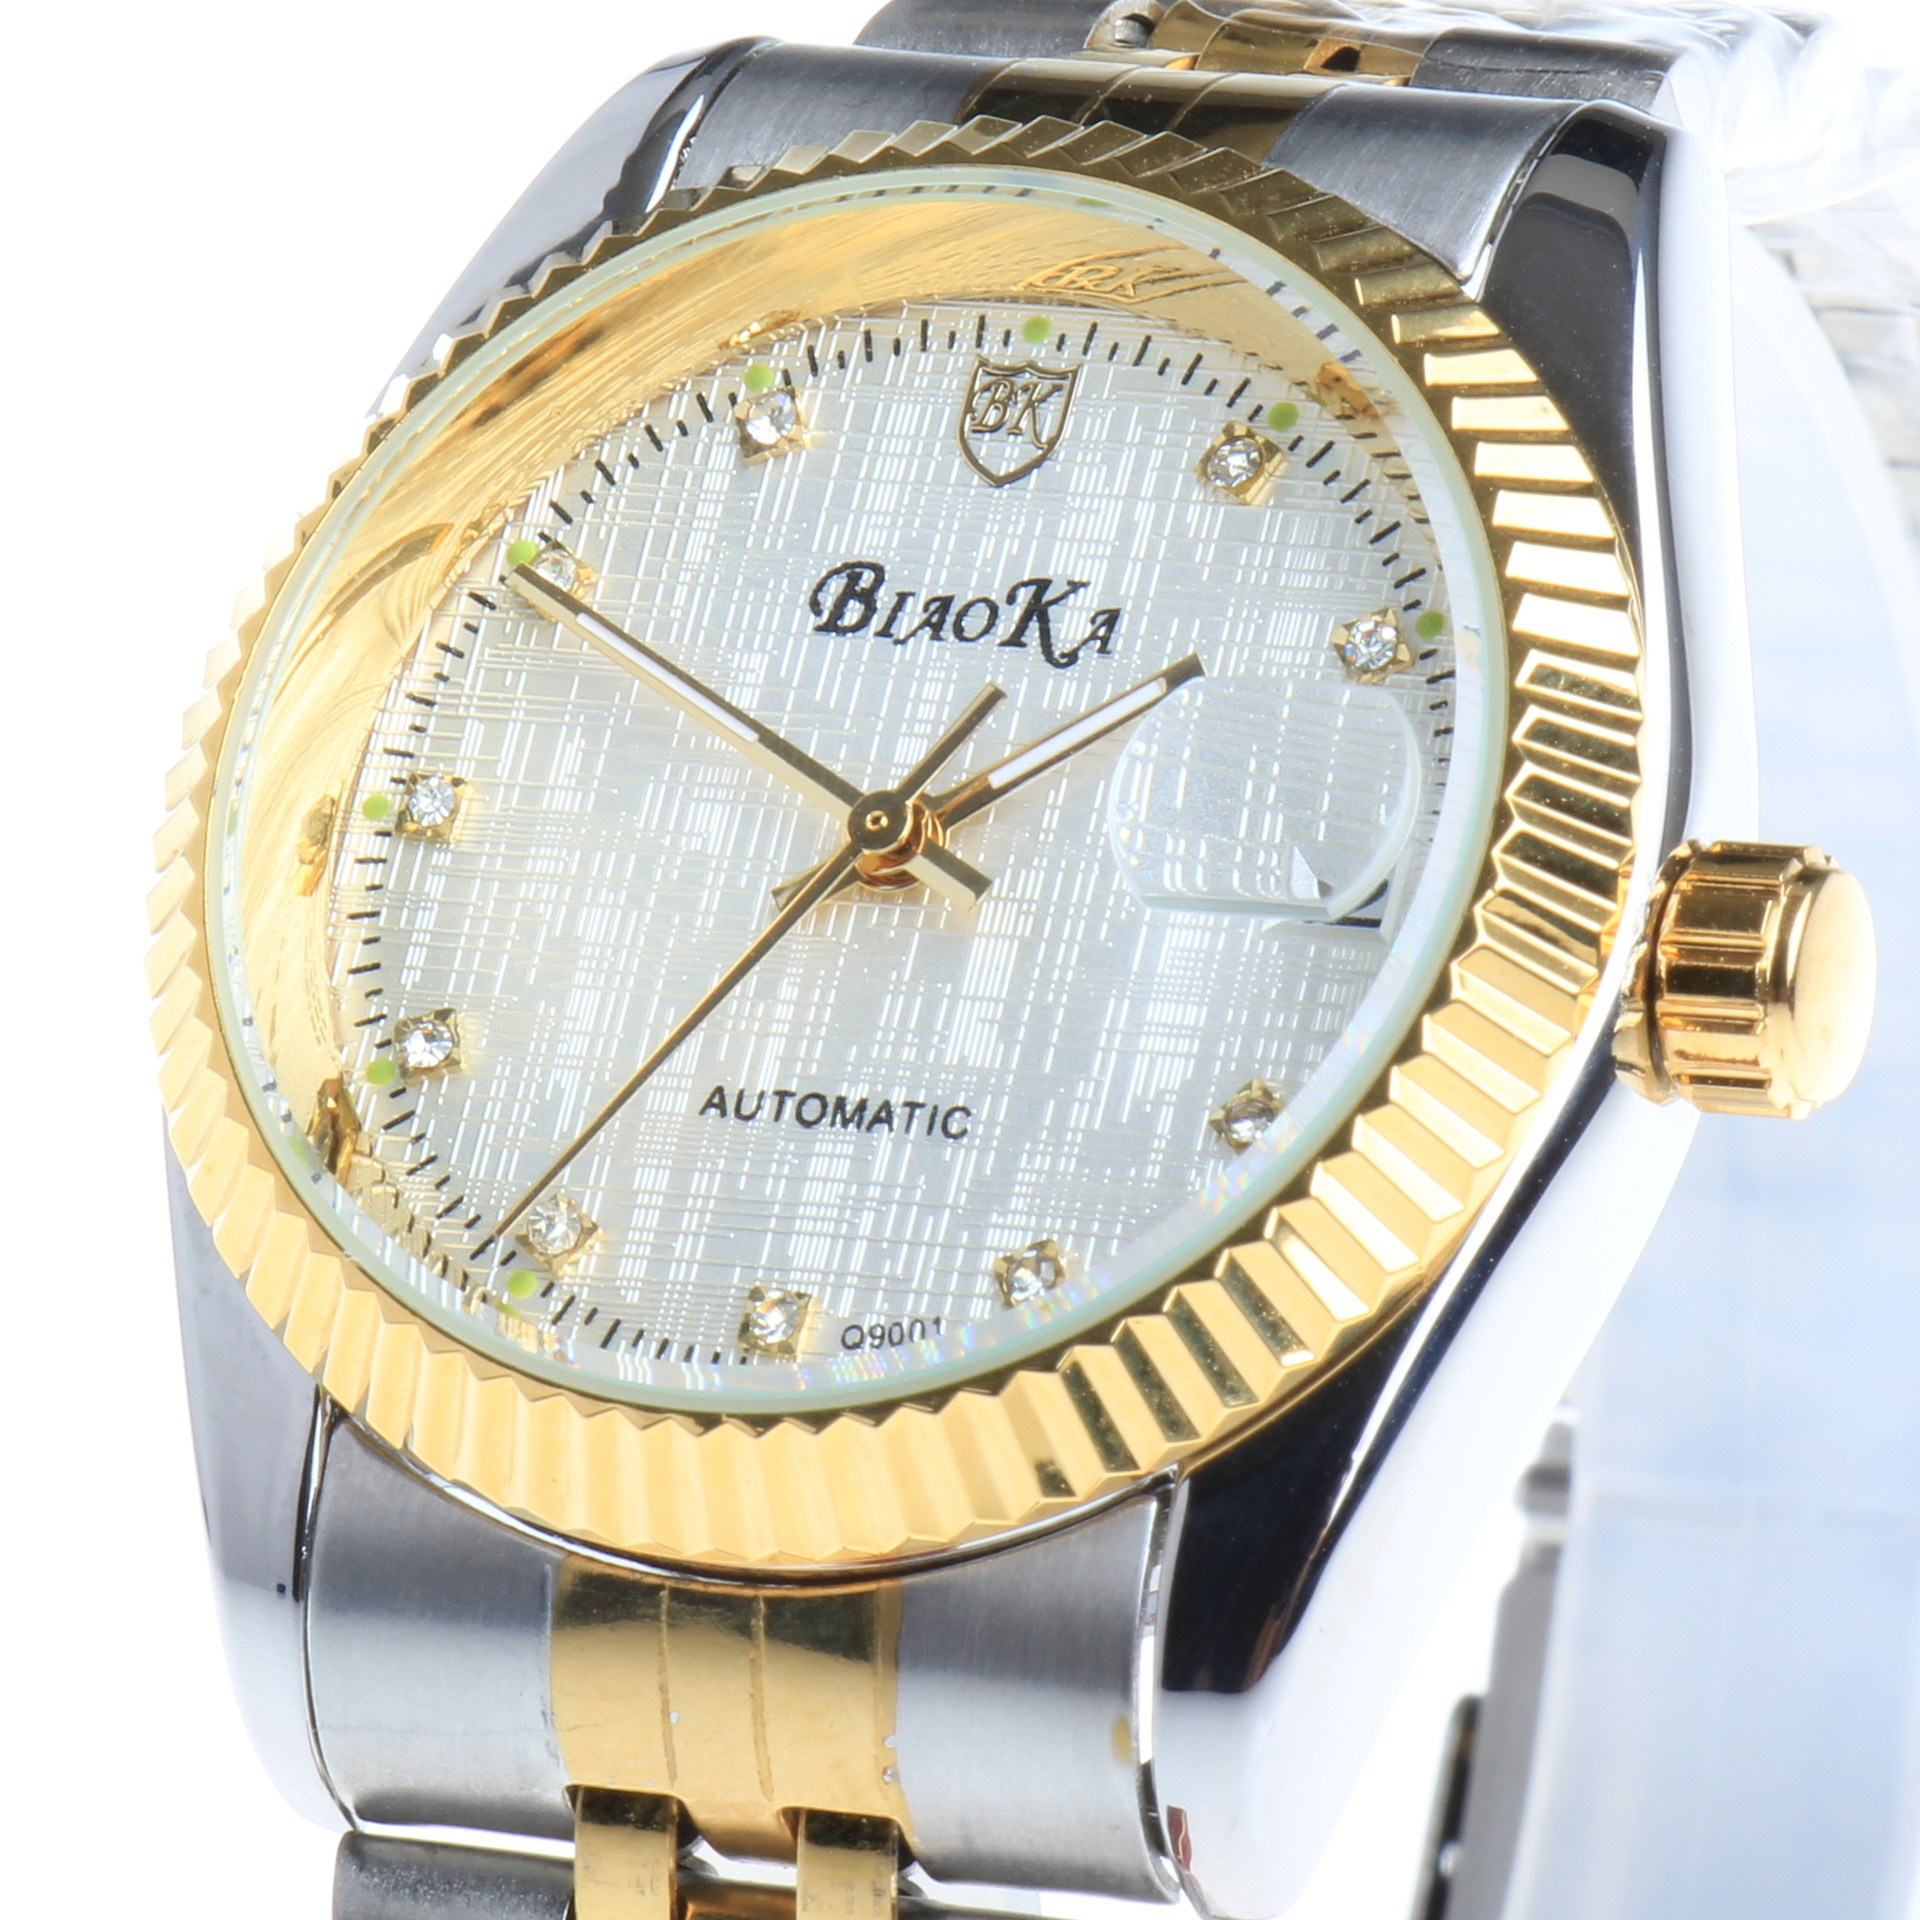 BIAOKA Watches Classic Mens AUTO Date automatic Mechanical Watch Self Winding Analog Skeleton Gold steel strip